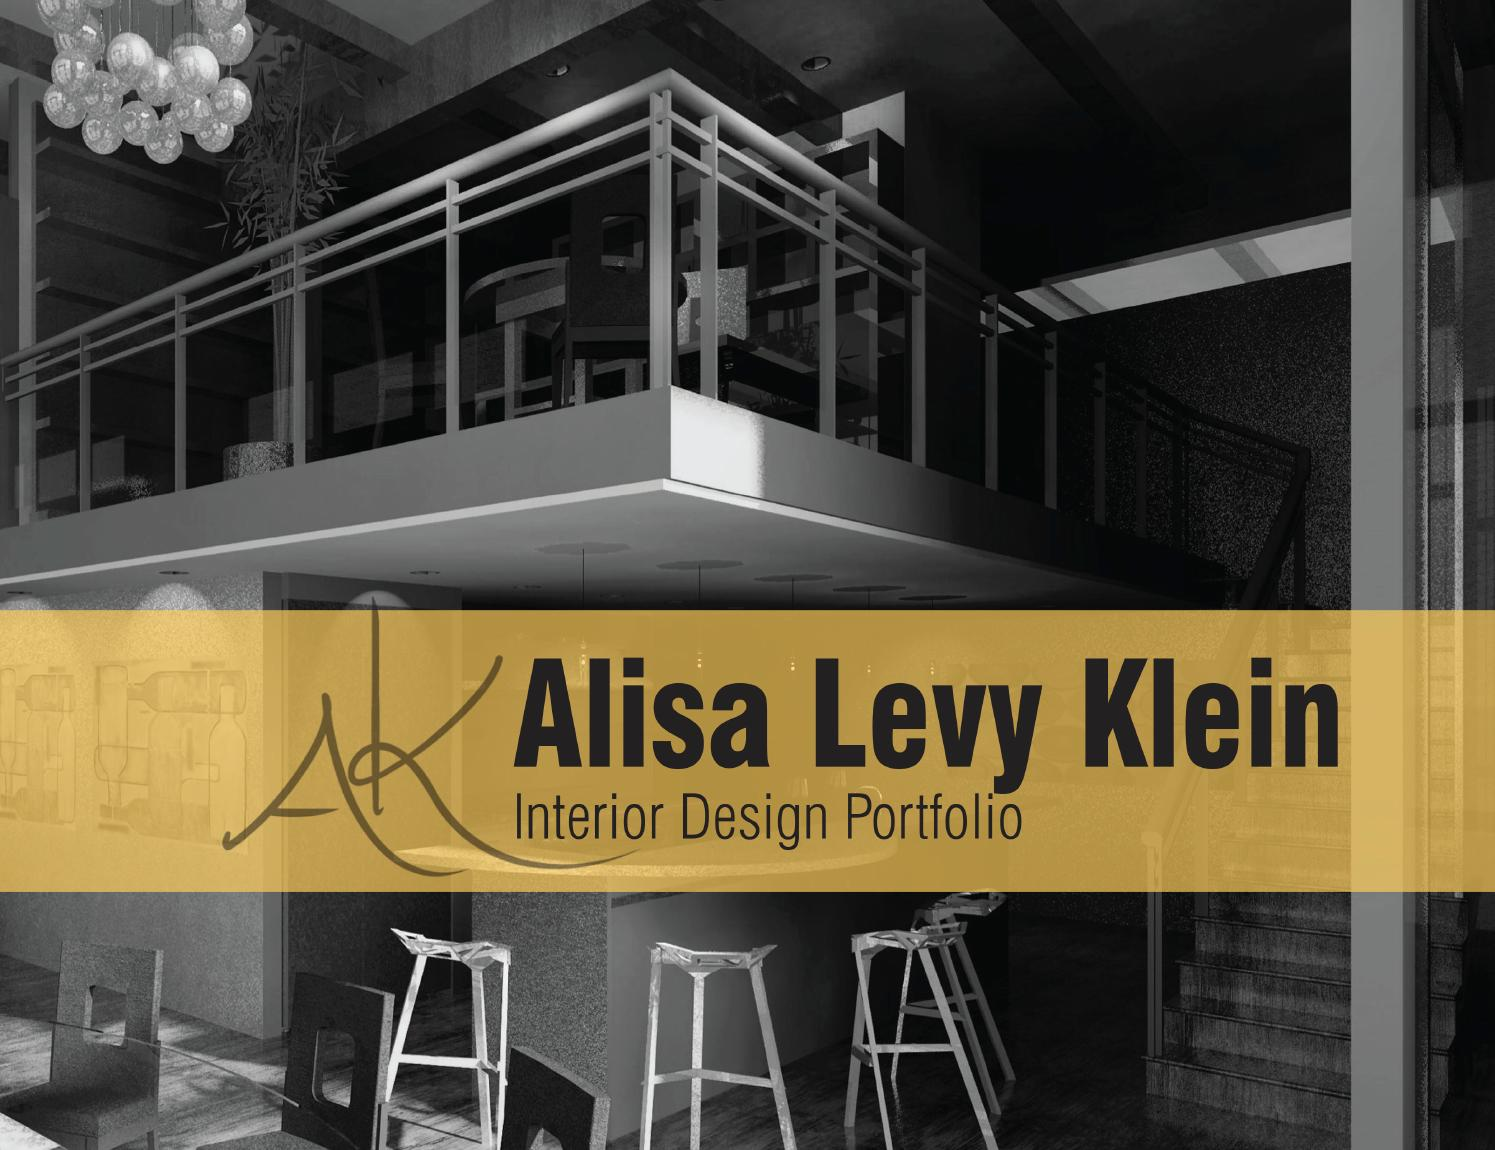 Interior design portfolio by alisa levy klein issuu for What does it take to become an interior designer